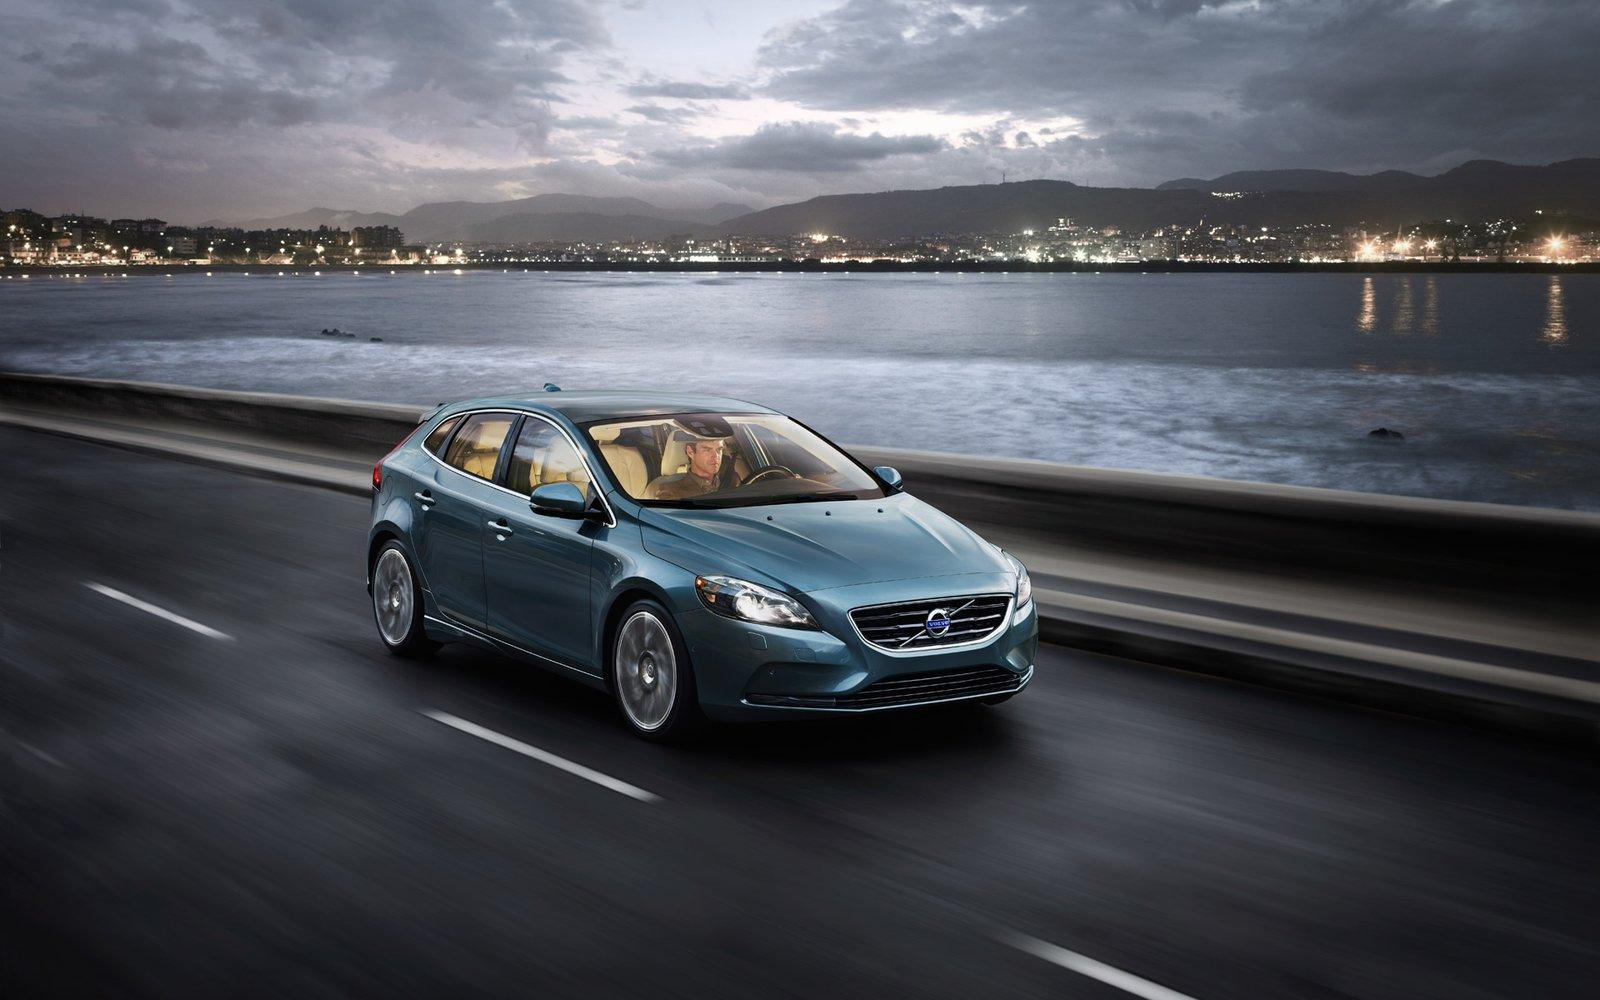 Volvo V40 2013 photo 81796 pictures at high resolution 1600x1000